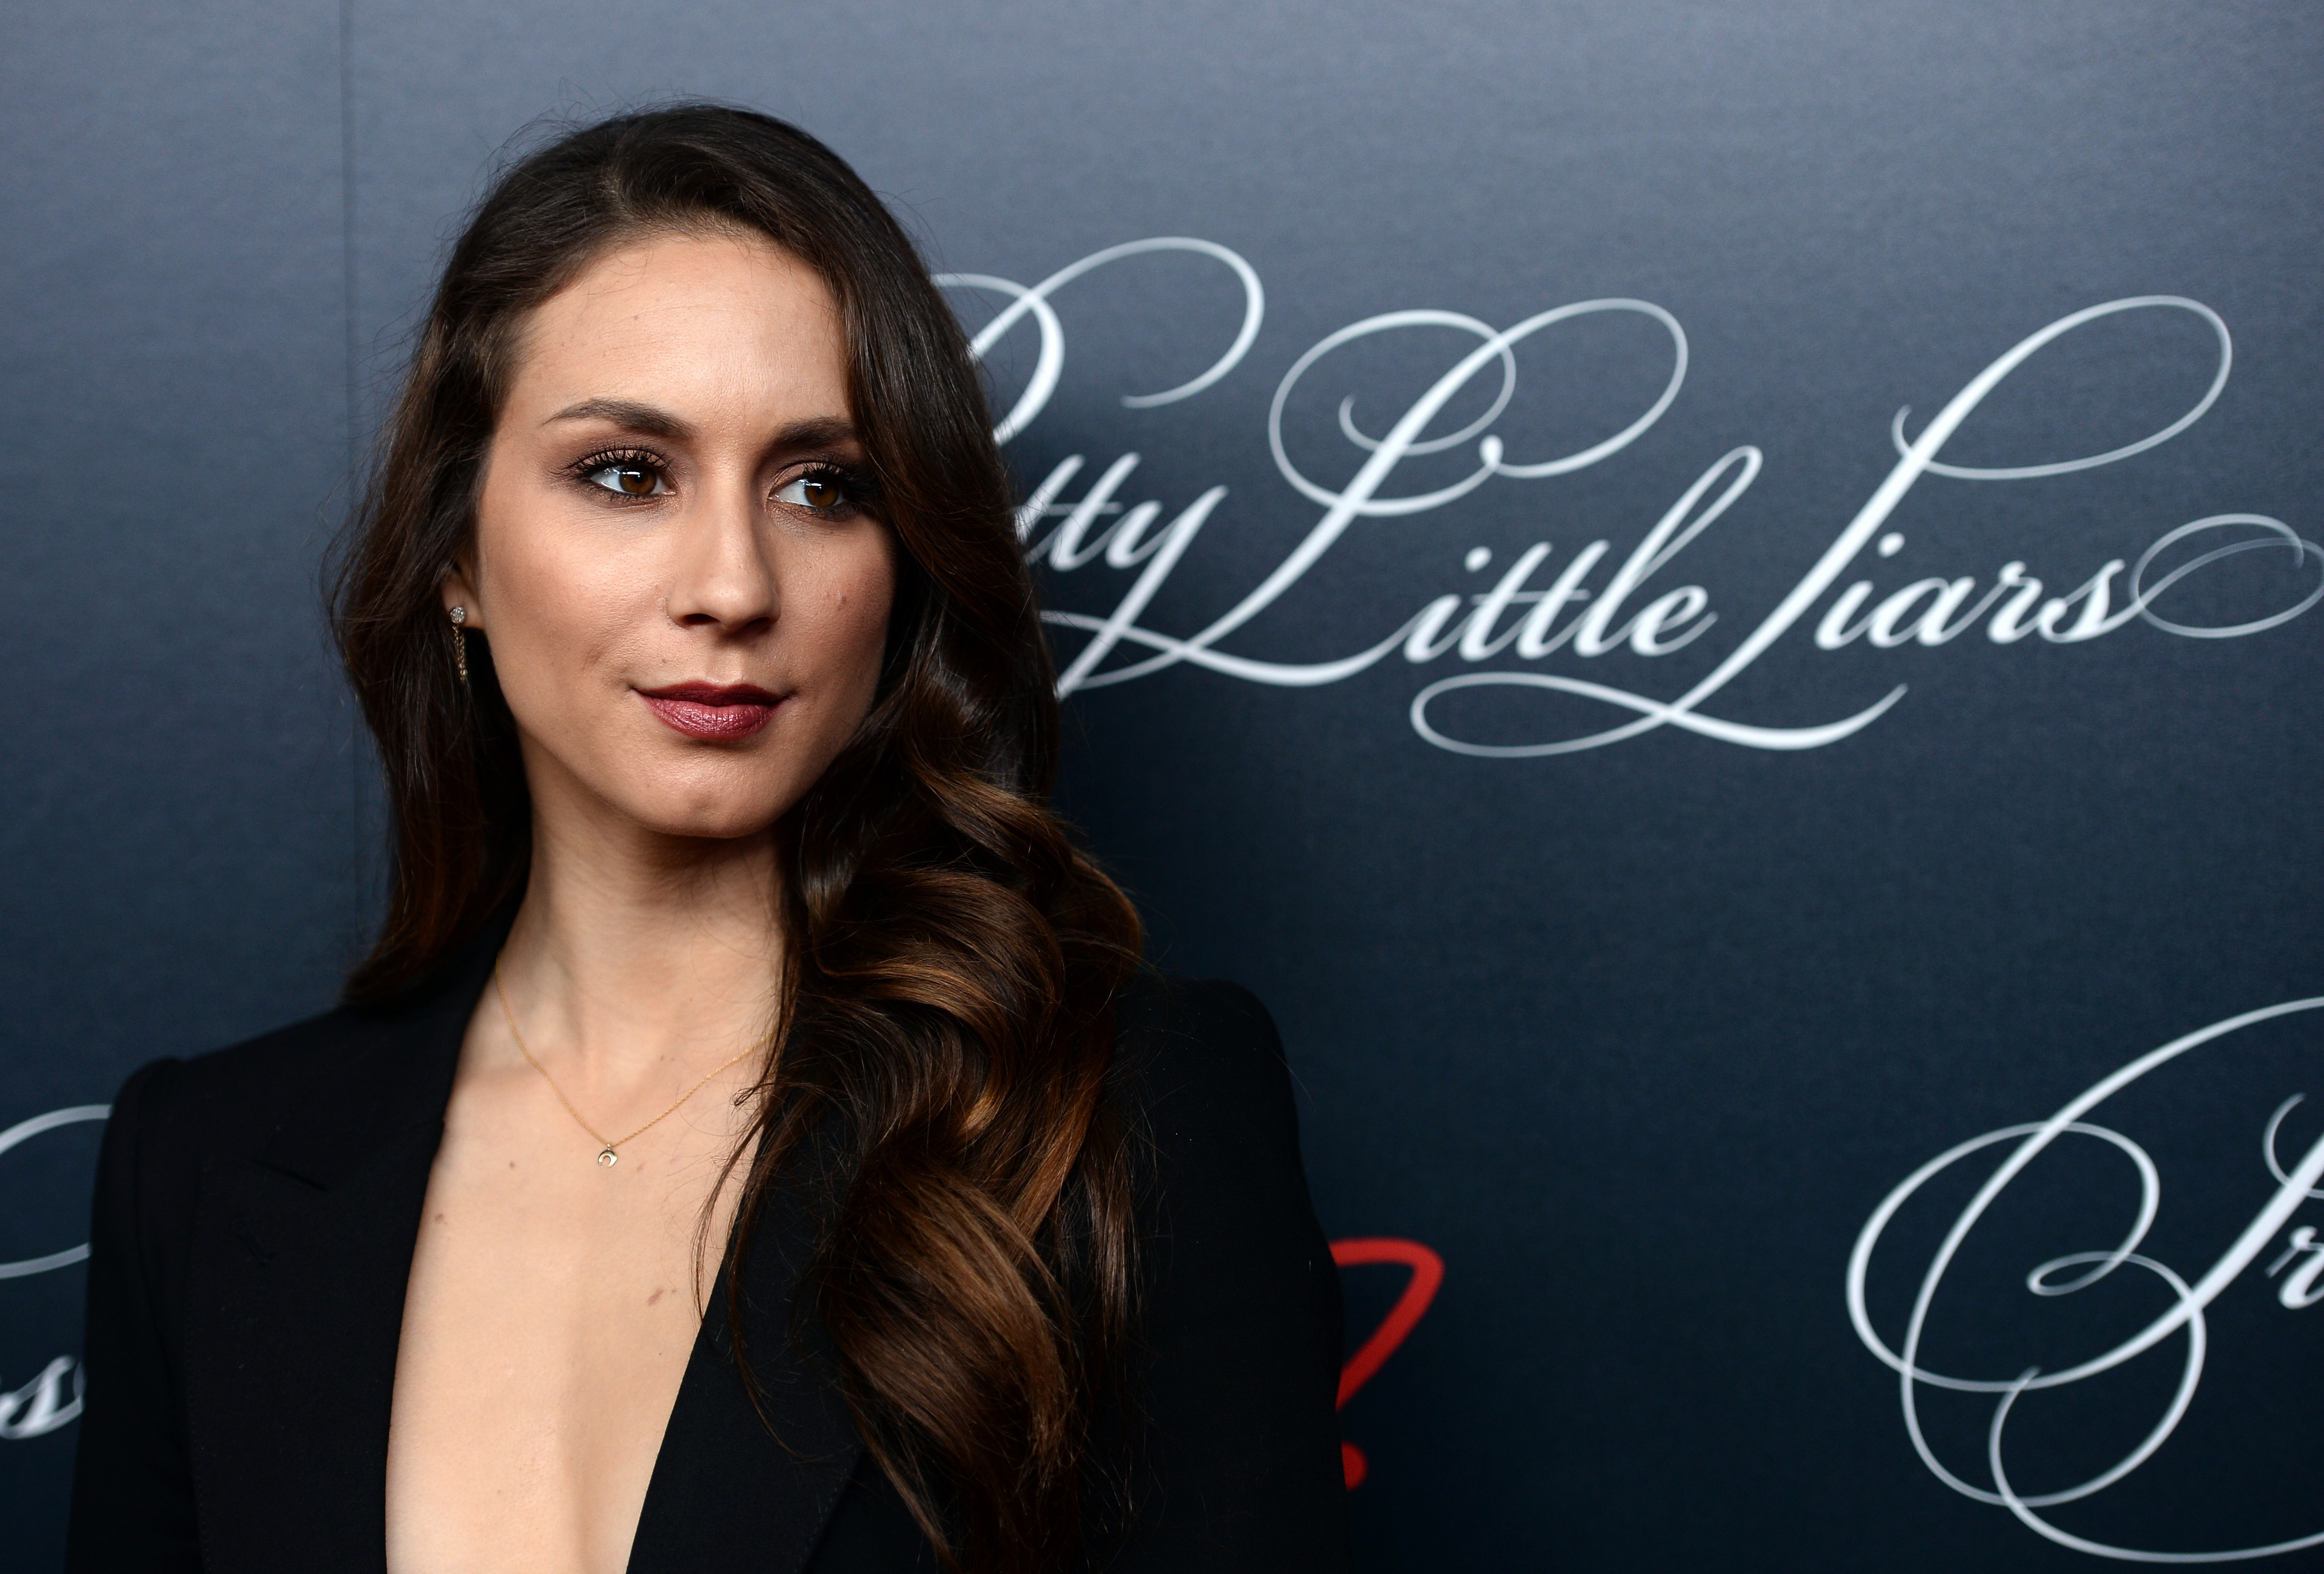 Troian Bellisario had a ~secret~ wedding dress and it's even more amazing than the first